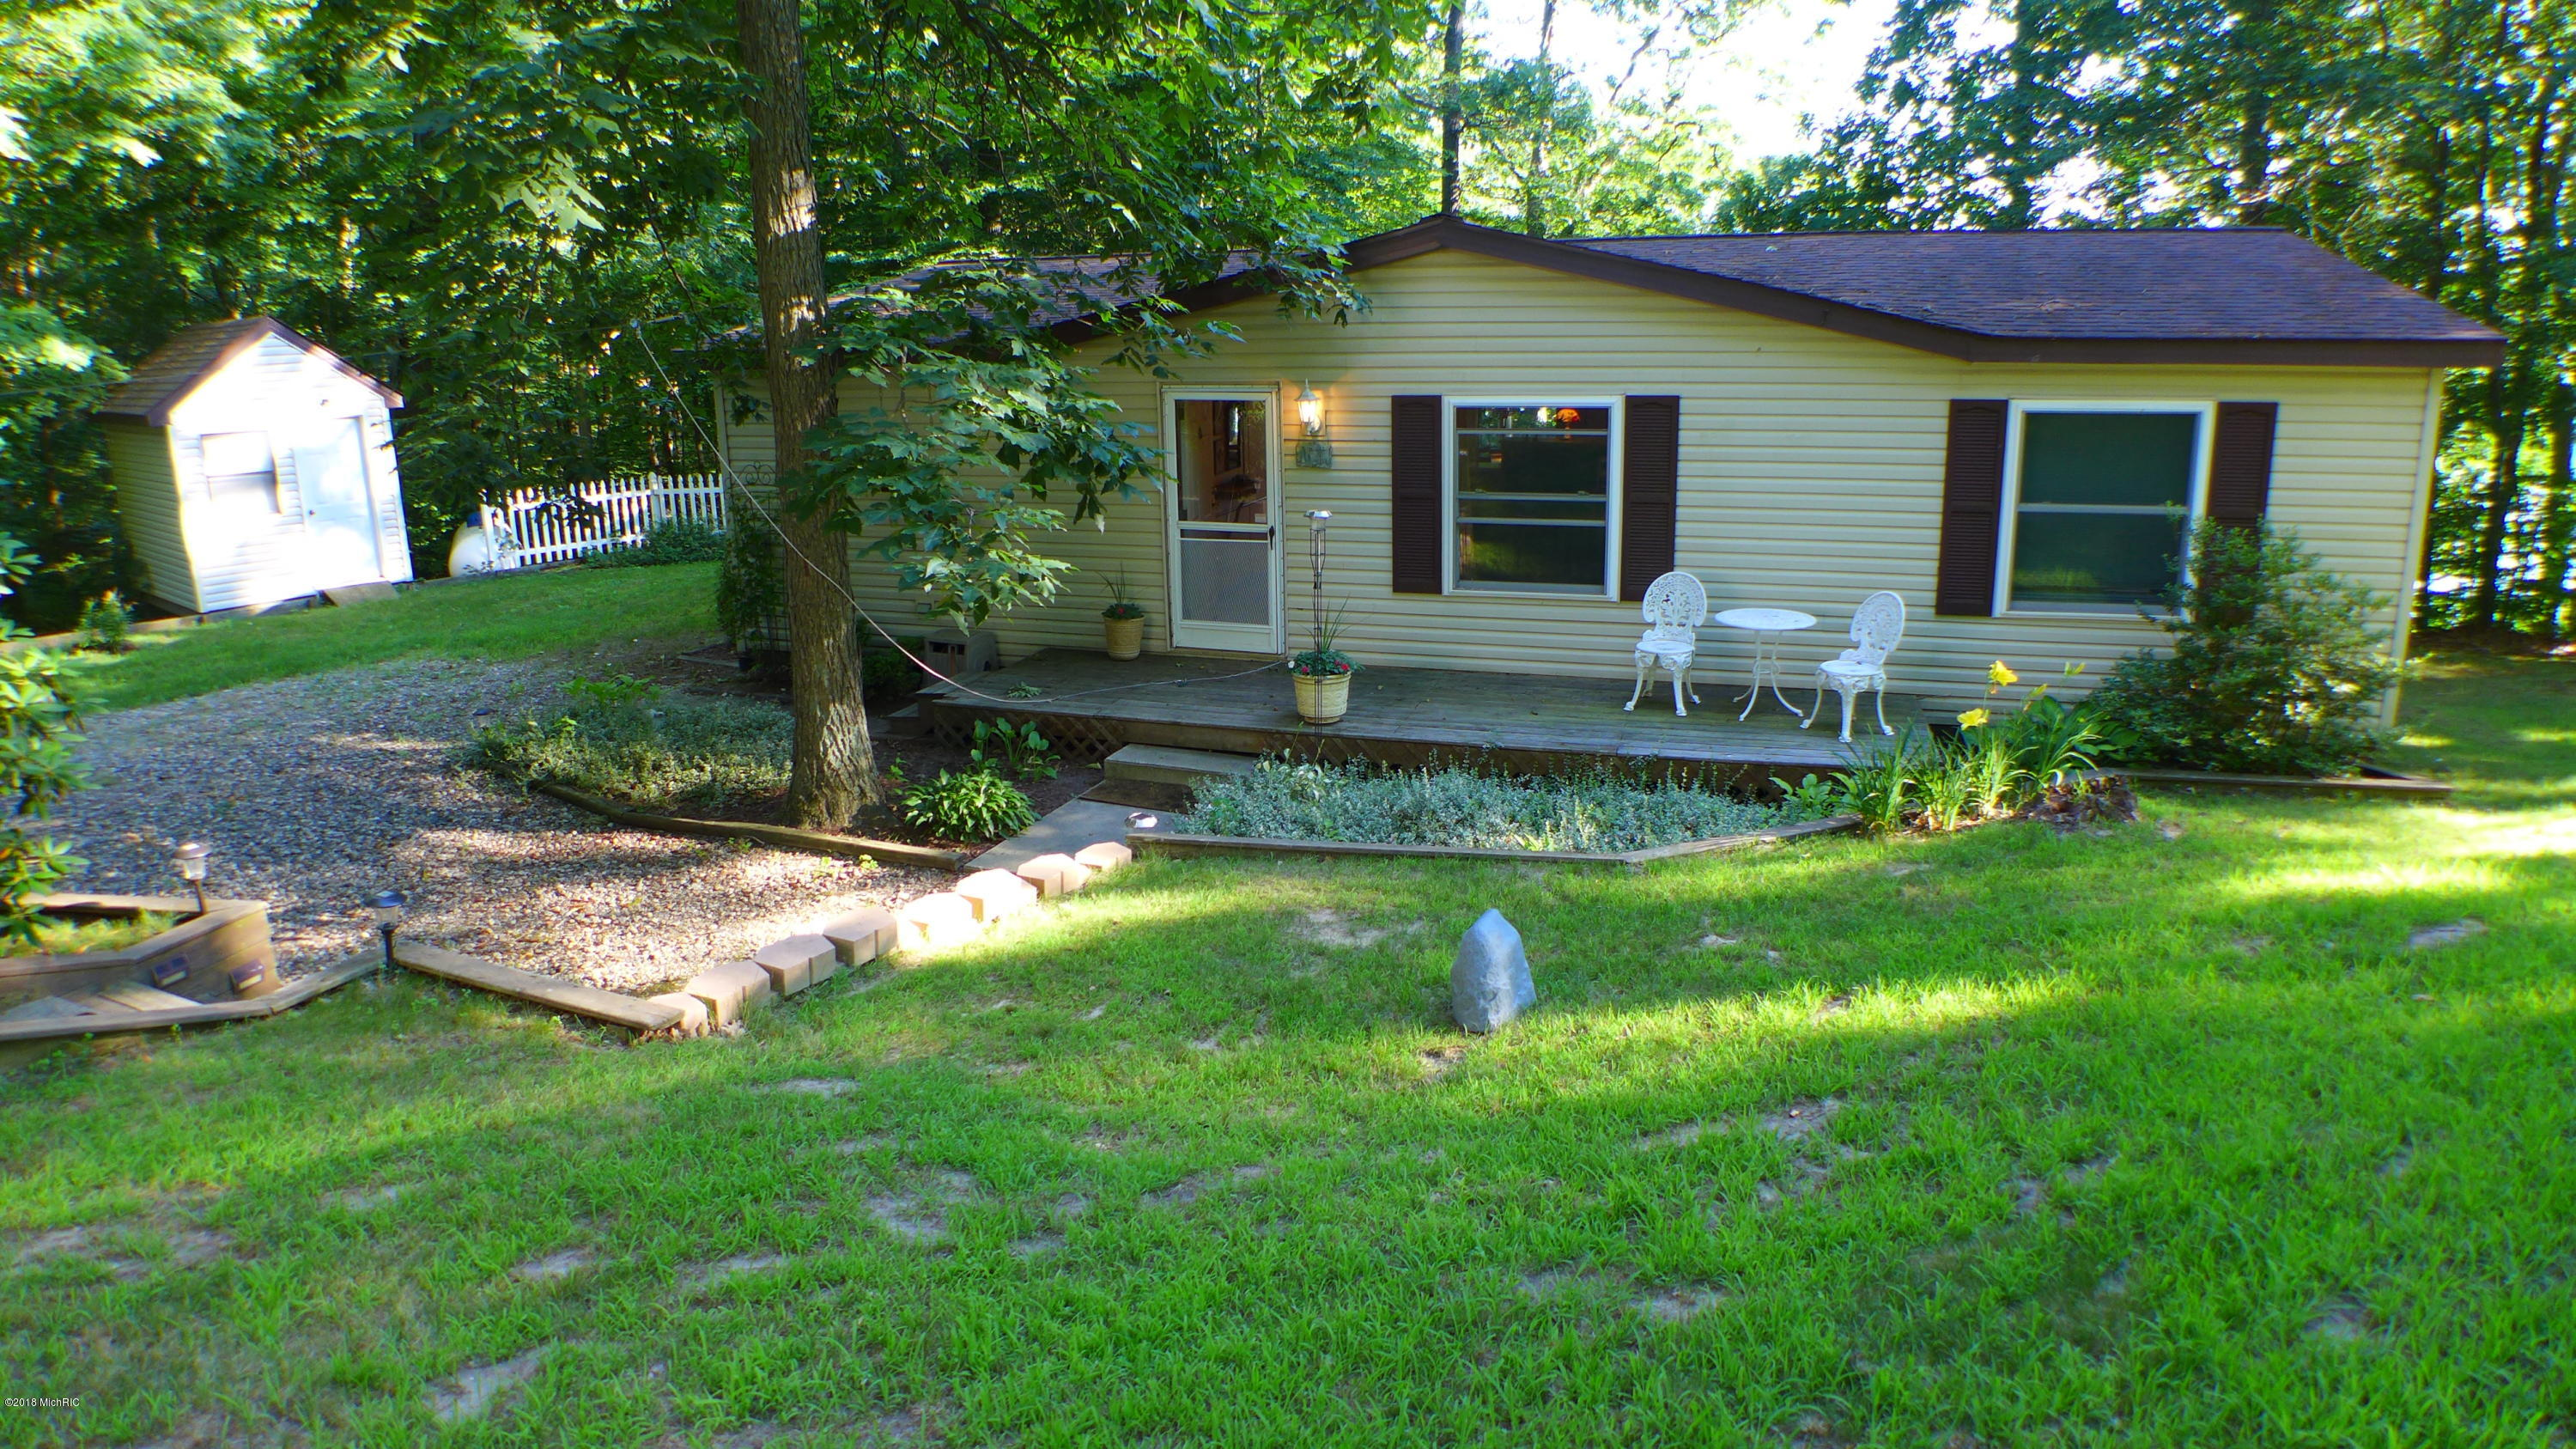 8500 Lammers , Delton, MI 49046 Photo 5